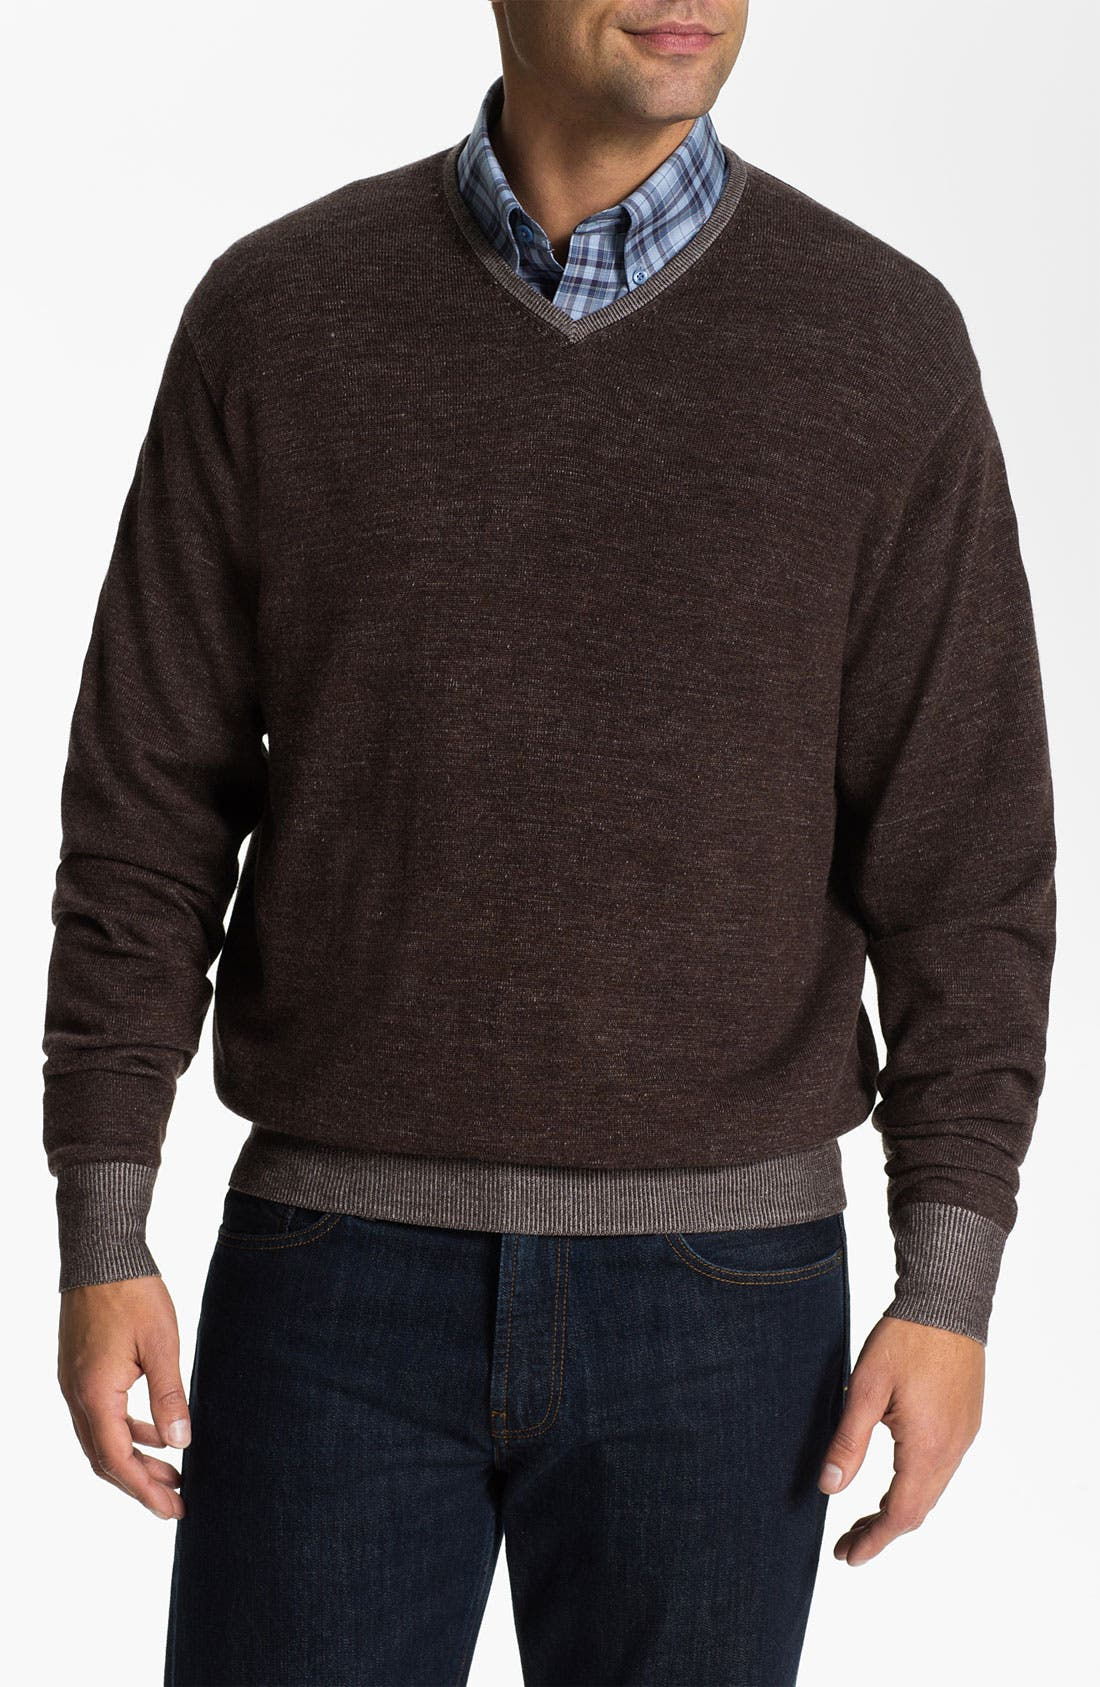 Main Image - Peter Millar V-Neck Merino Wool Sweater